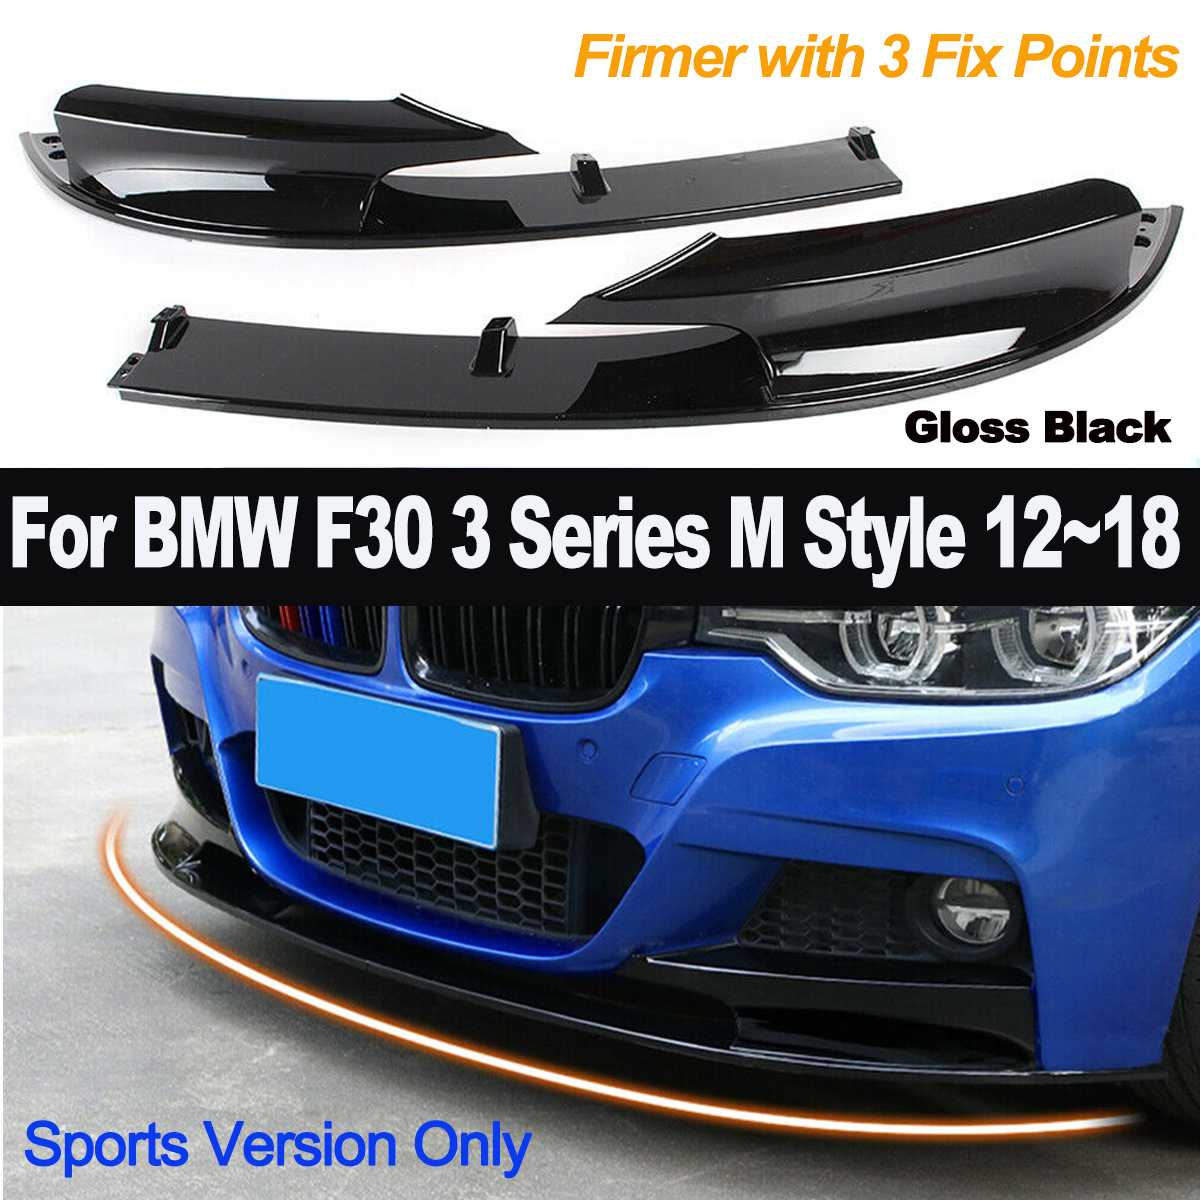 2pcs Gloss Black Front Bumper Cover Lip for BMW F30 3 Series M Style 2012-2018 Car Styling ABS Bumper Only for Sports Version